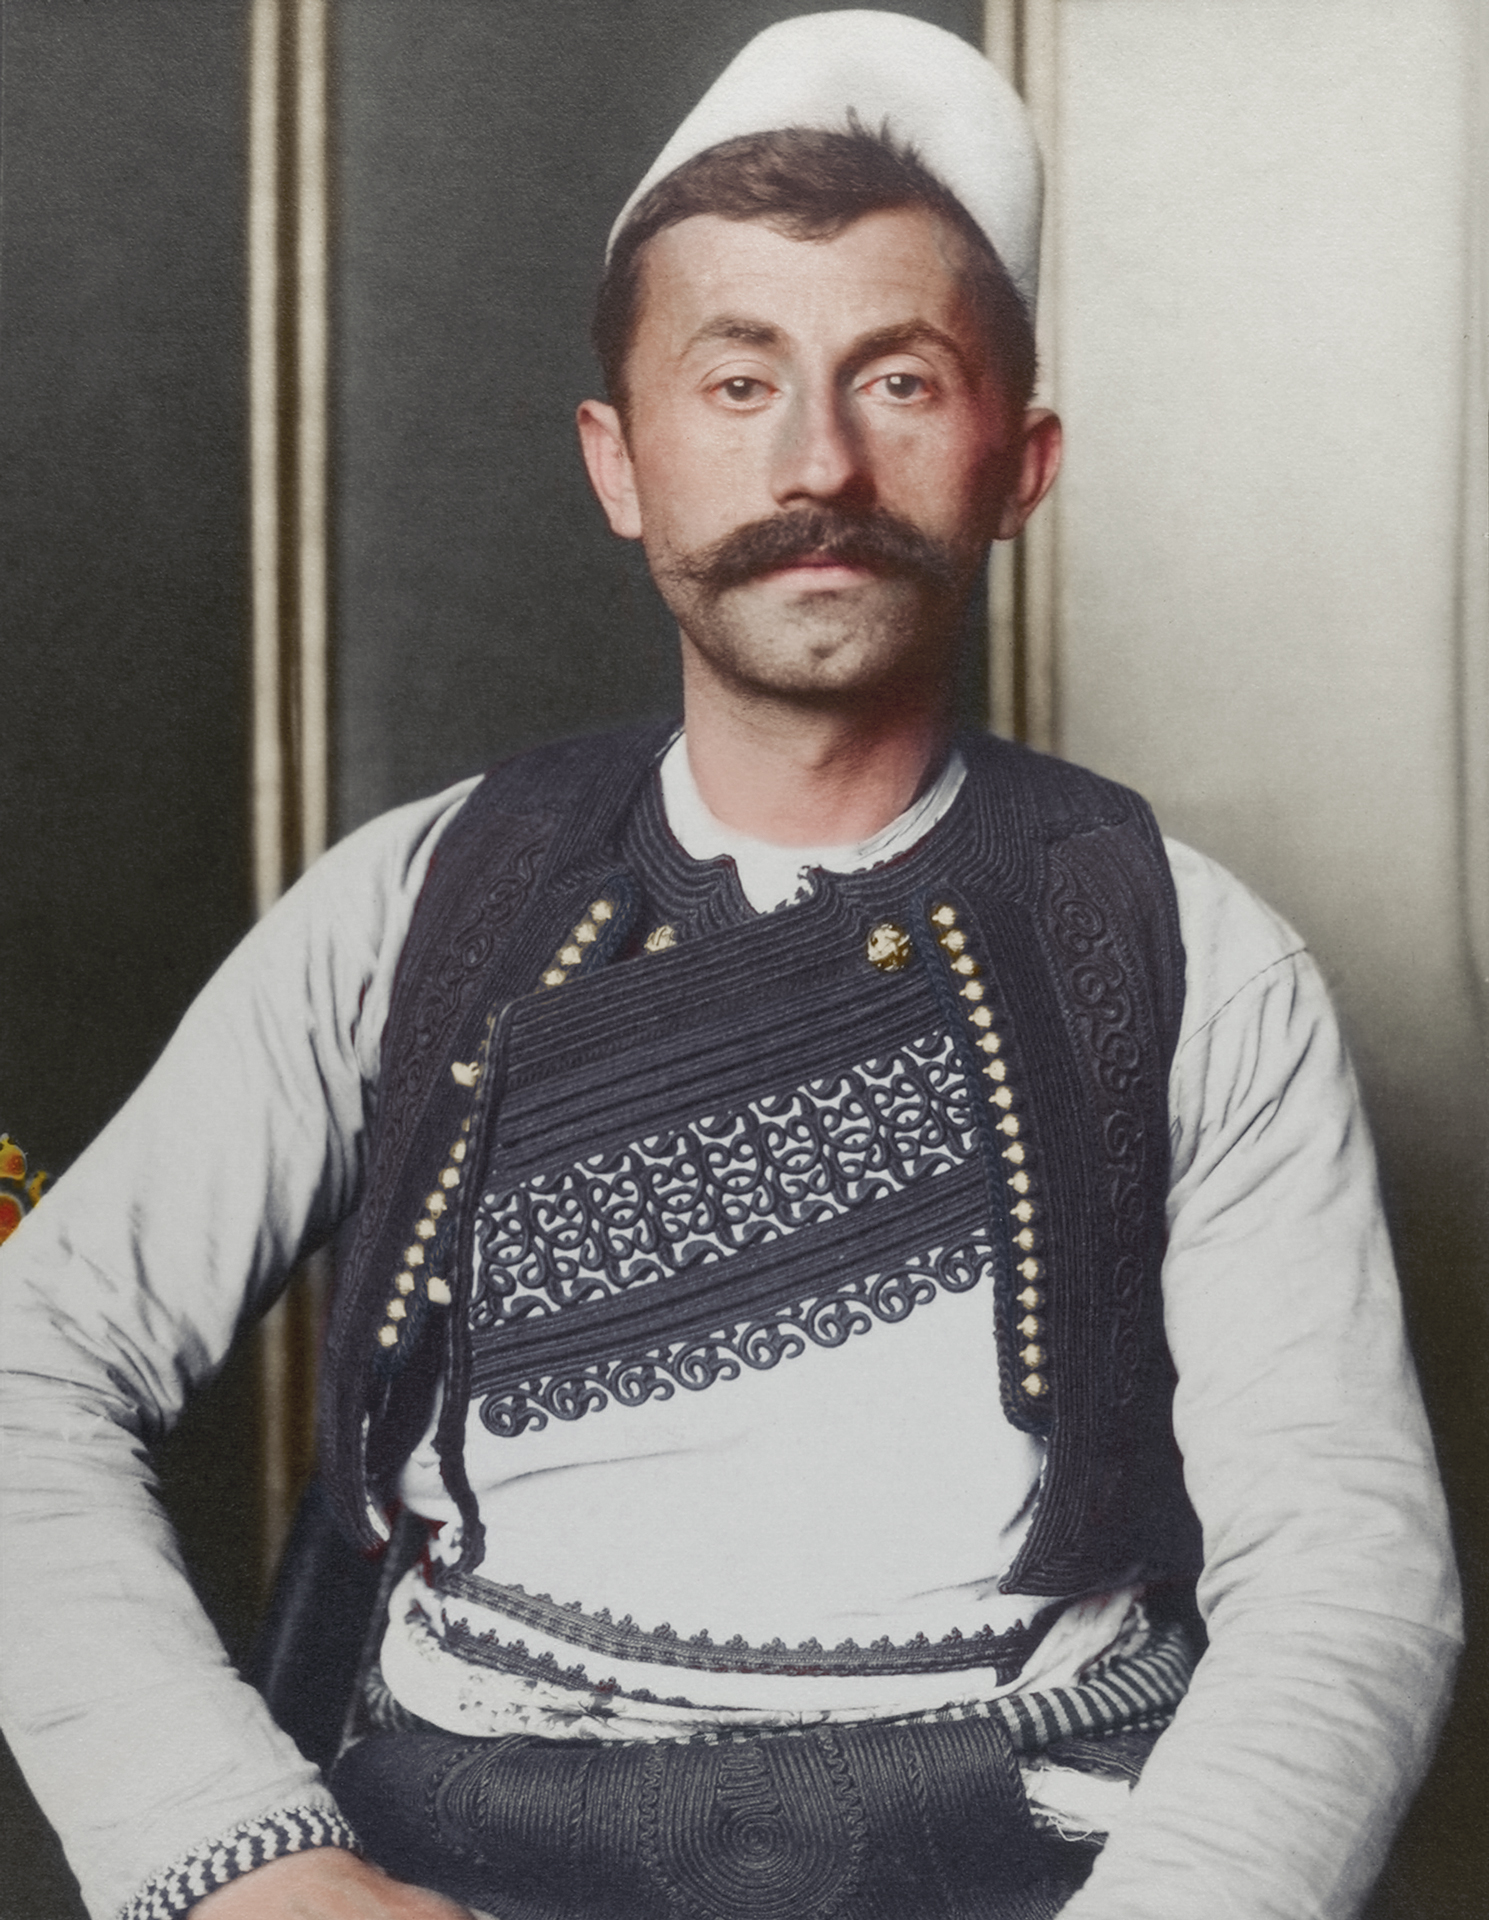 "c. 1910 ""Albanian soldier."" The truncated brimless felt cap is known as a qeleshe, whose shape was largely determined by region and moulded to one's head. The vest, known as a jelek or xhamadan was decorated with embroidered braids of silk or cotton, its colour and decoration denoted the region where the wearer was from and their social rank. Most likely, this soldier is from the north eastern regions of Albania judging by the cut and colour of his outfit."